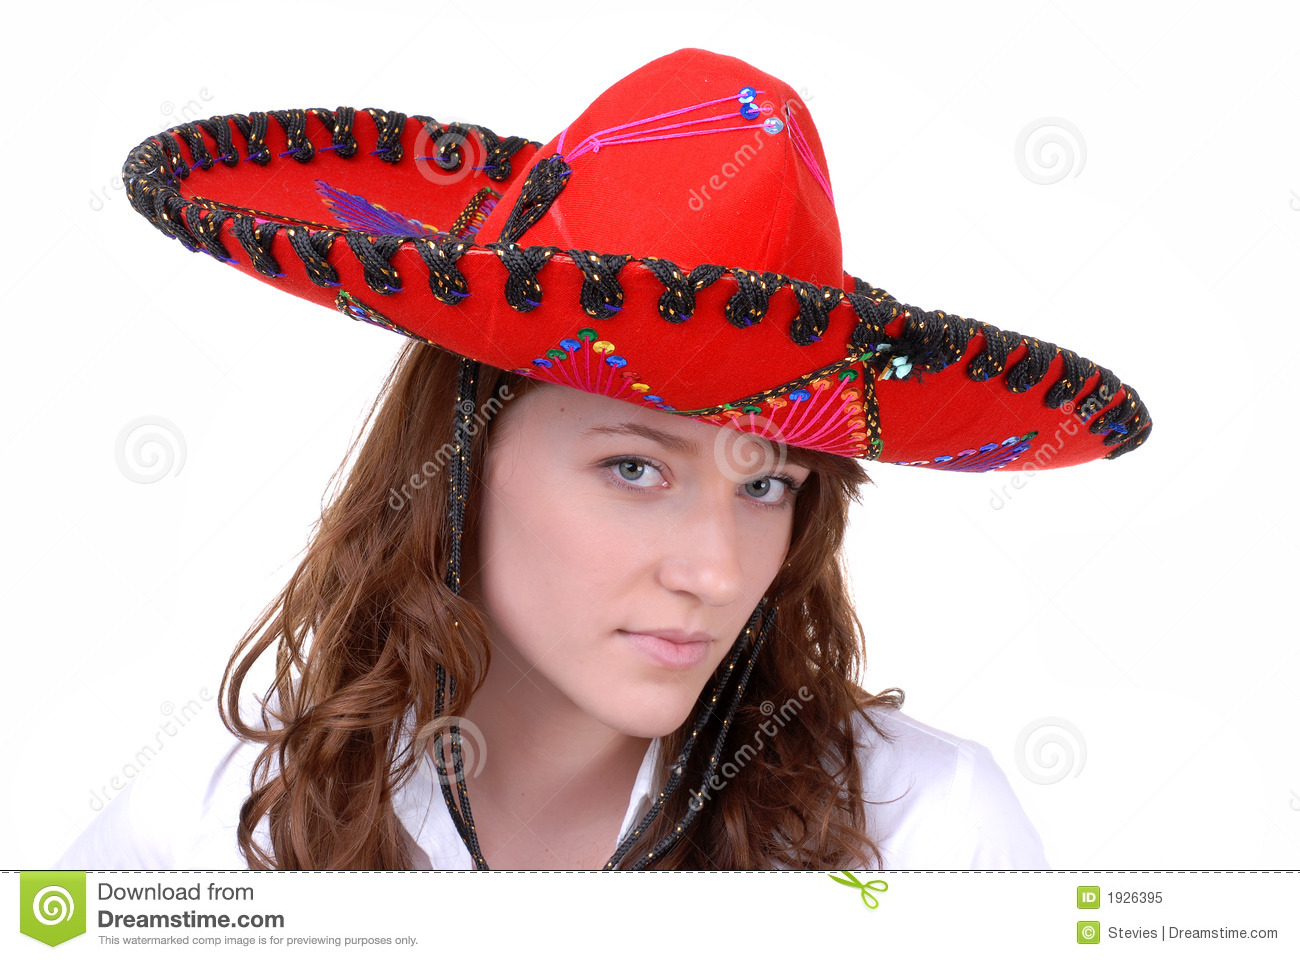 mexican hat asian singles A mexican hat with a conical crown and a very wide, saucer-shaped brim, highly embroidered made of plush felt songkok a cap widely worn in indonesia, brunei, malaysia, singapore, the southern philippines and southern thailand, mostly among muslim males.